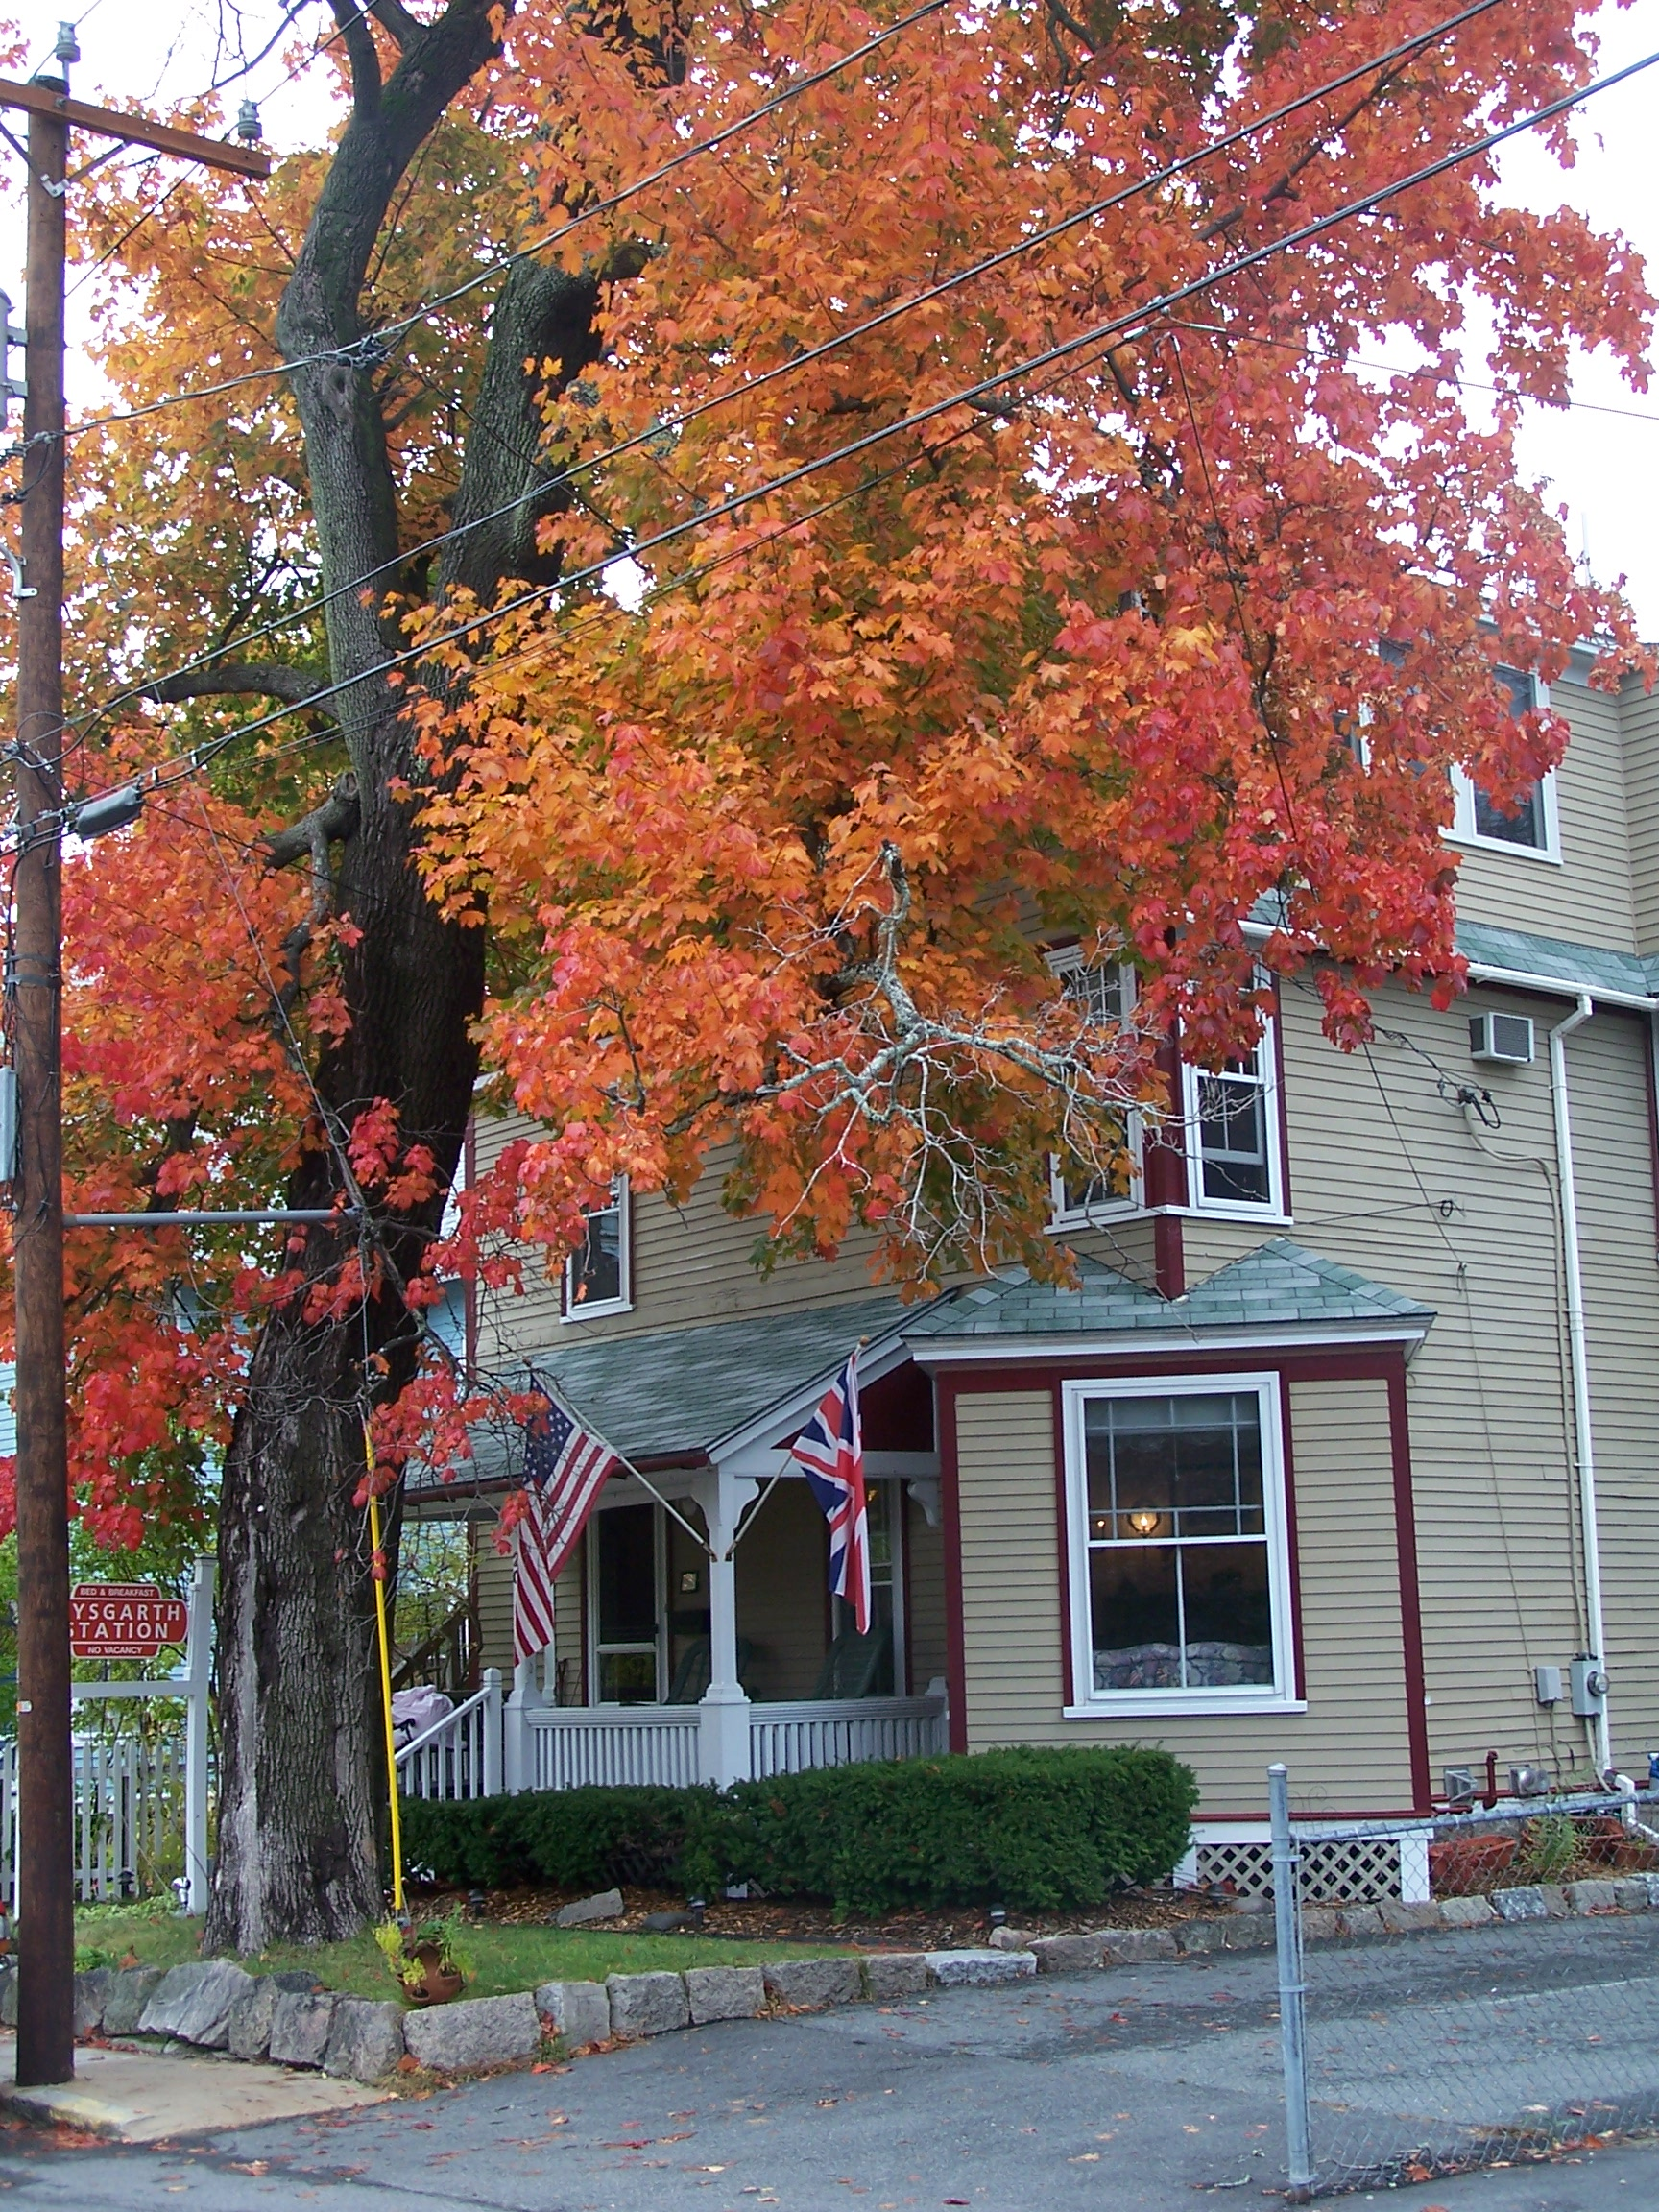 At Aysgarth Station B&B, Bar Harbor leaf peeping starts right in the front yard.